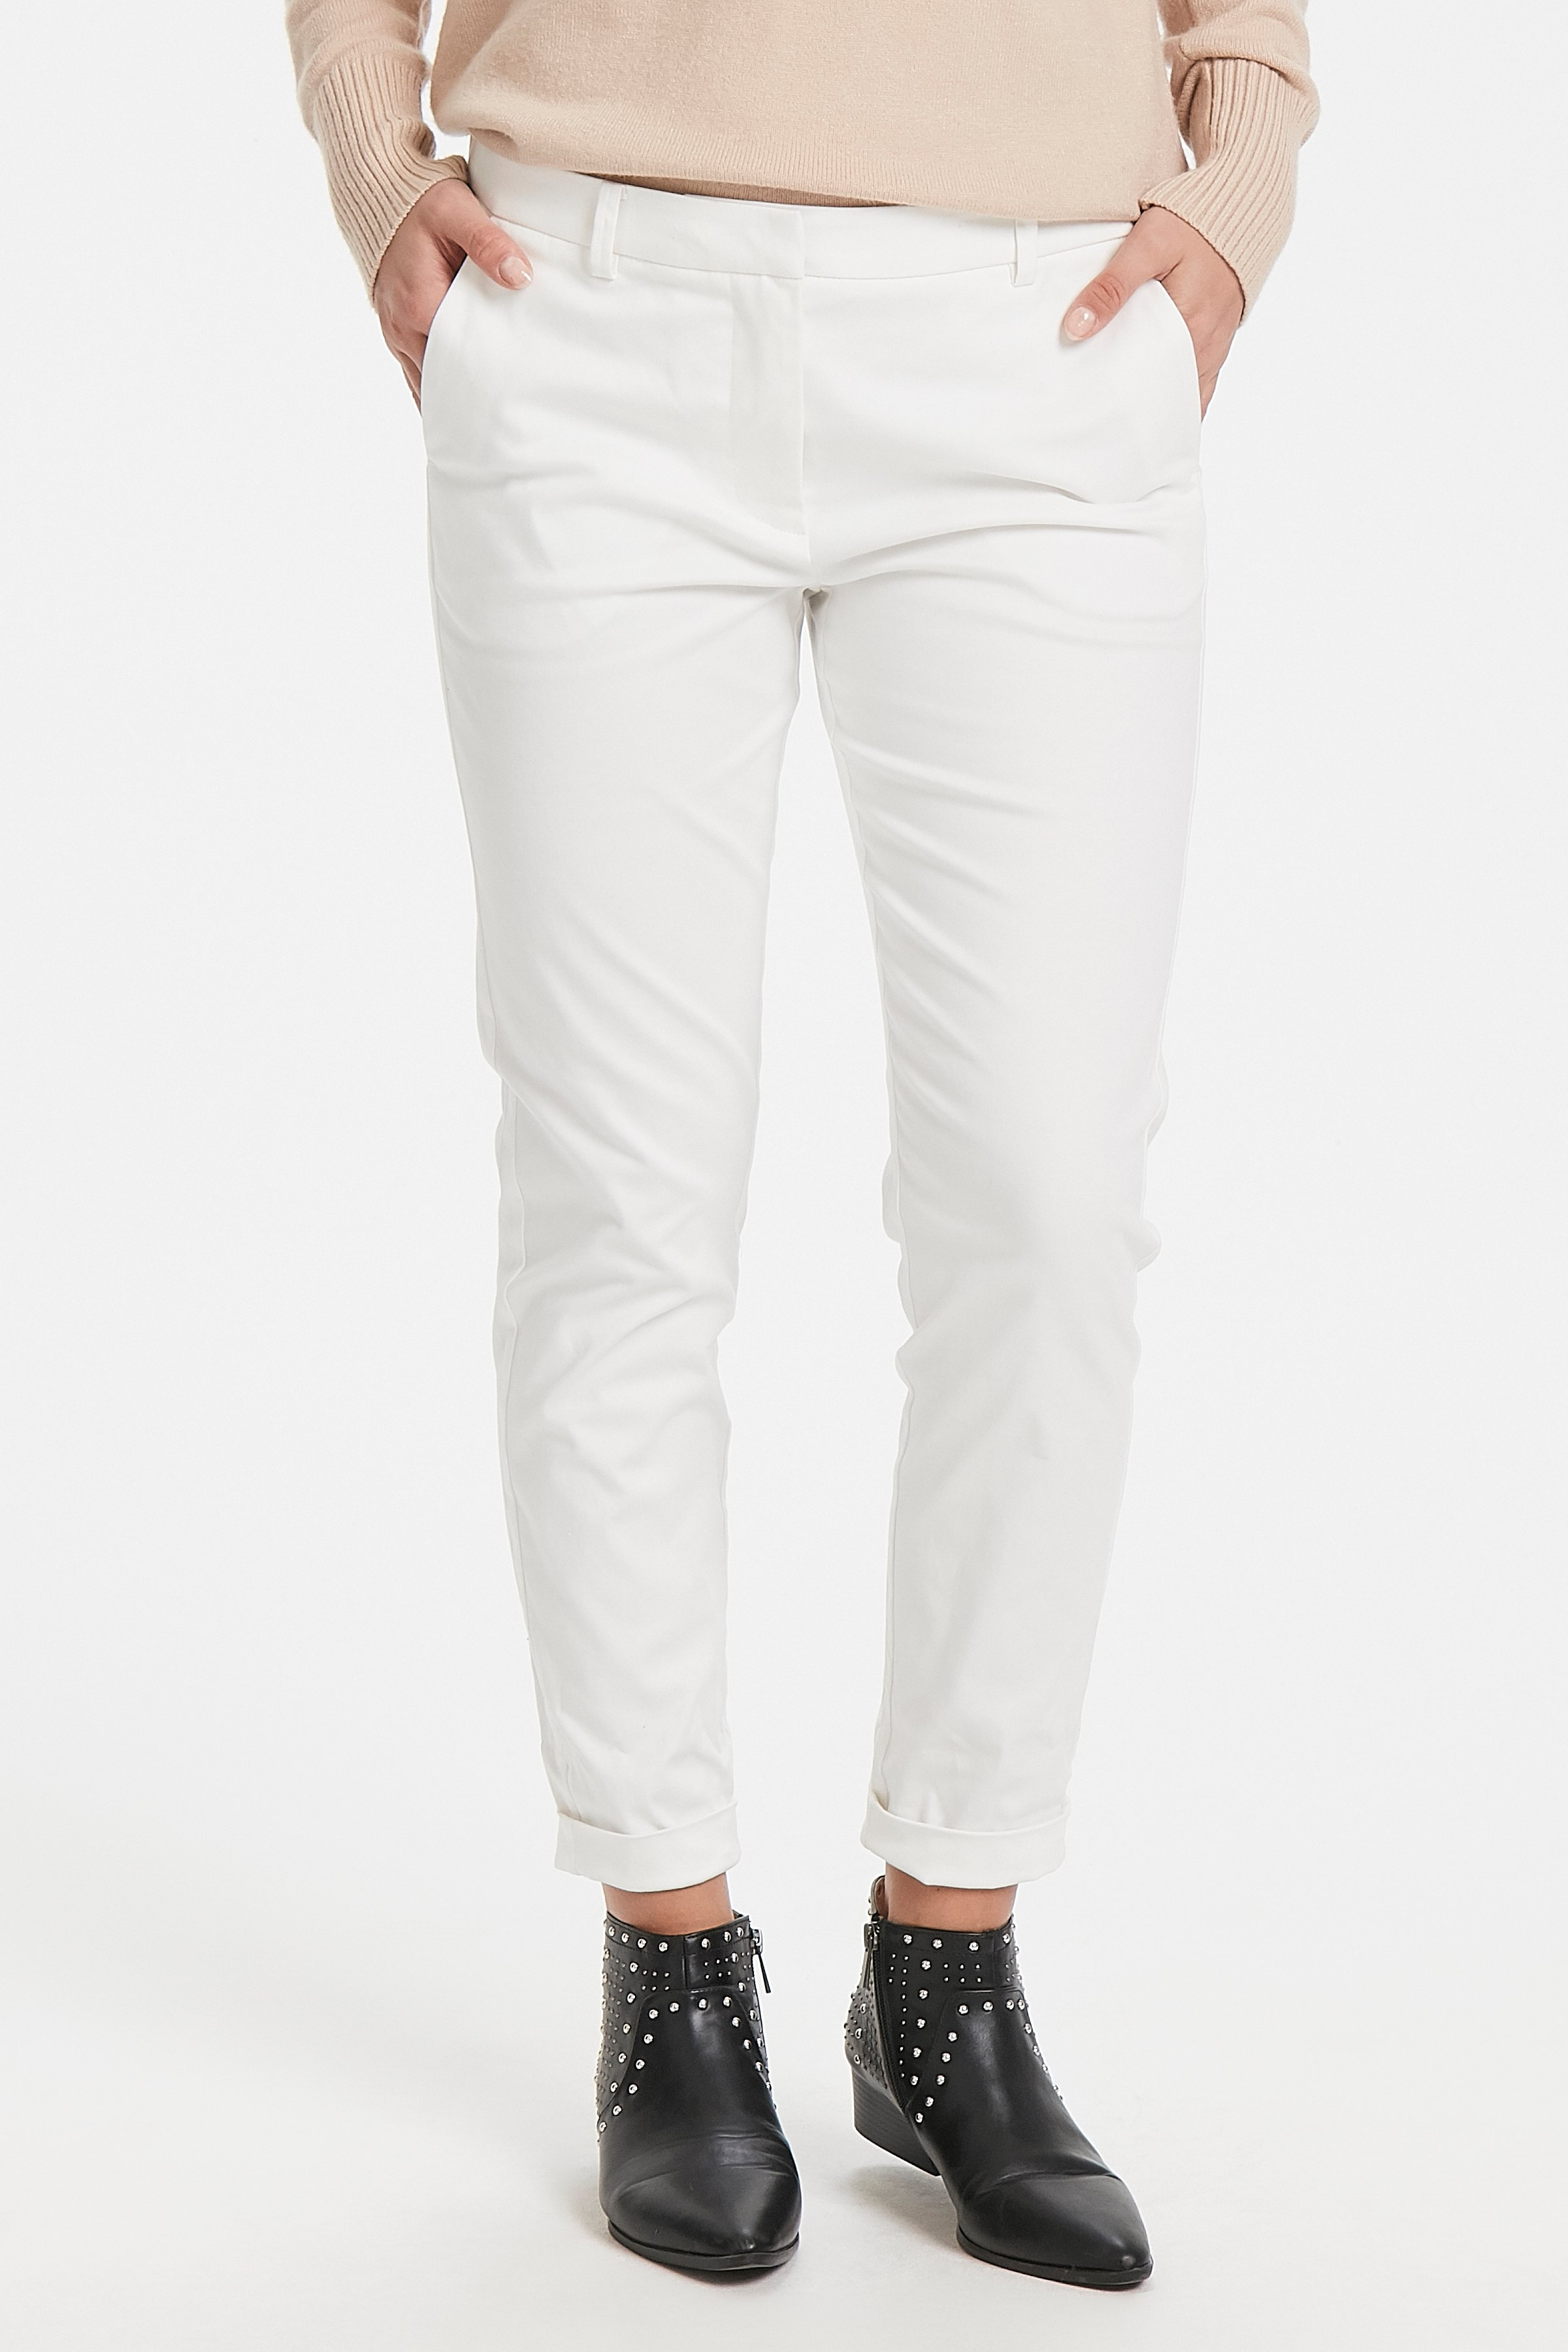 Off White Pants Suiting fra b.young – Køb Off White Pants Suiting fra str. 34-46 her